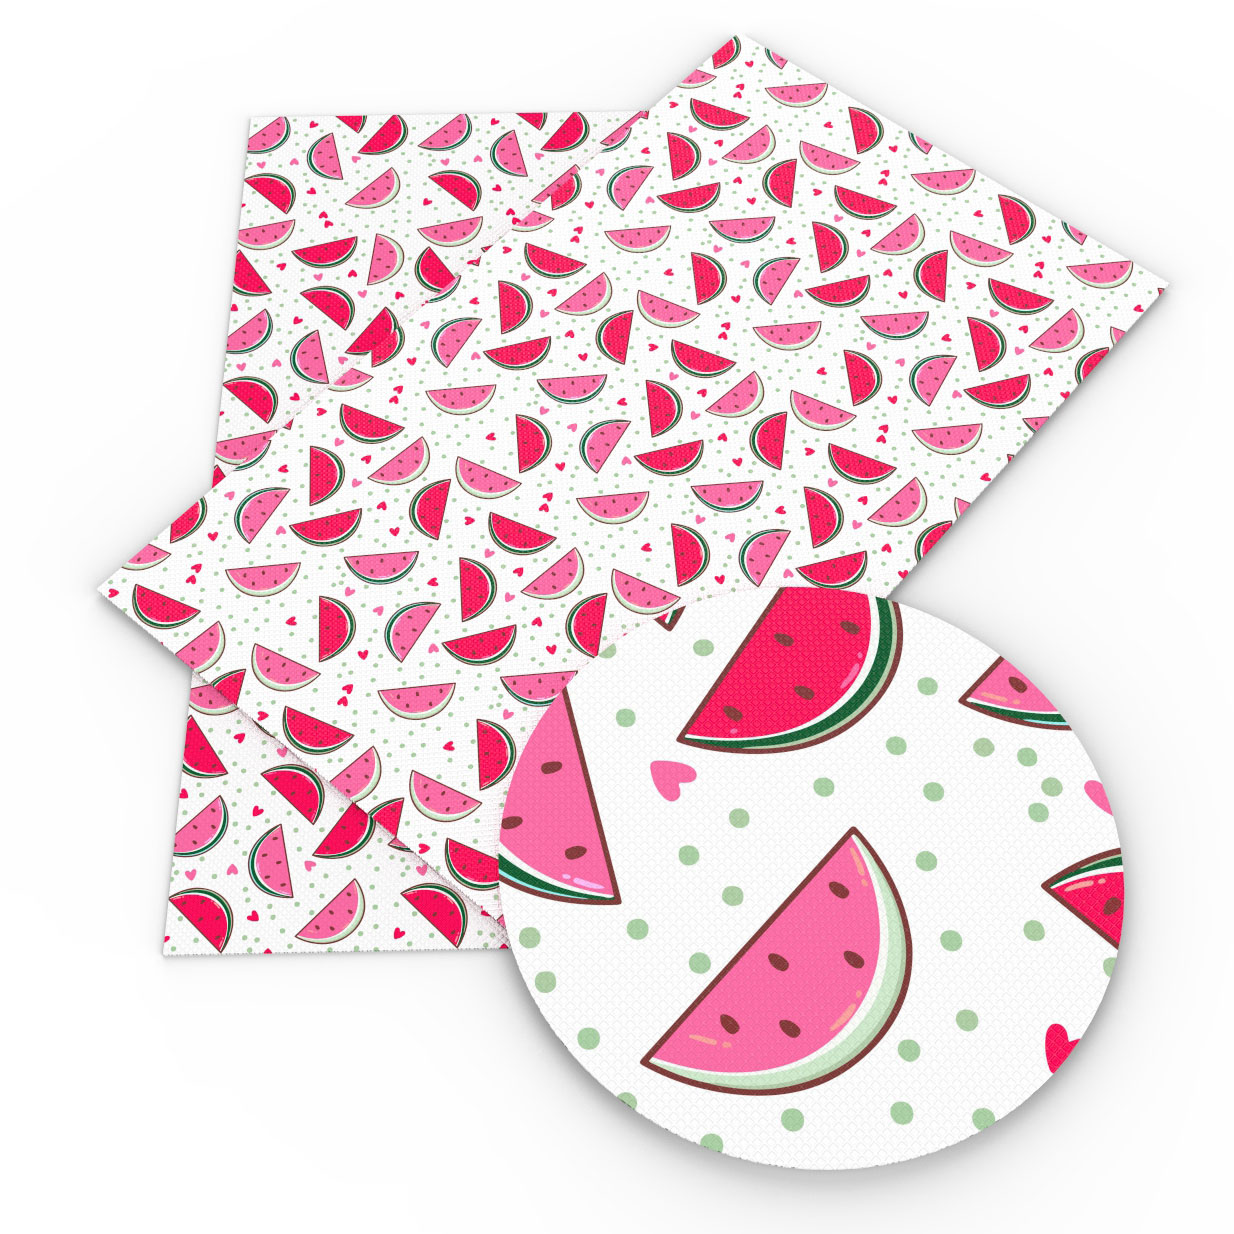 David accessories 20*33cm flower watermelon dots star Faux Synthetic Leather Fabric, DIY Sewing HairBow Bags Crafts,1Yc5022